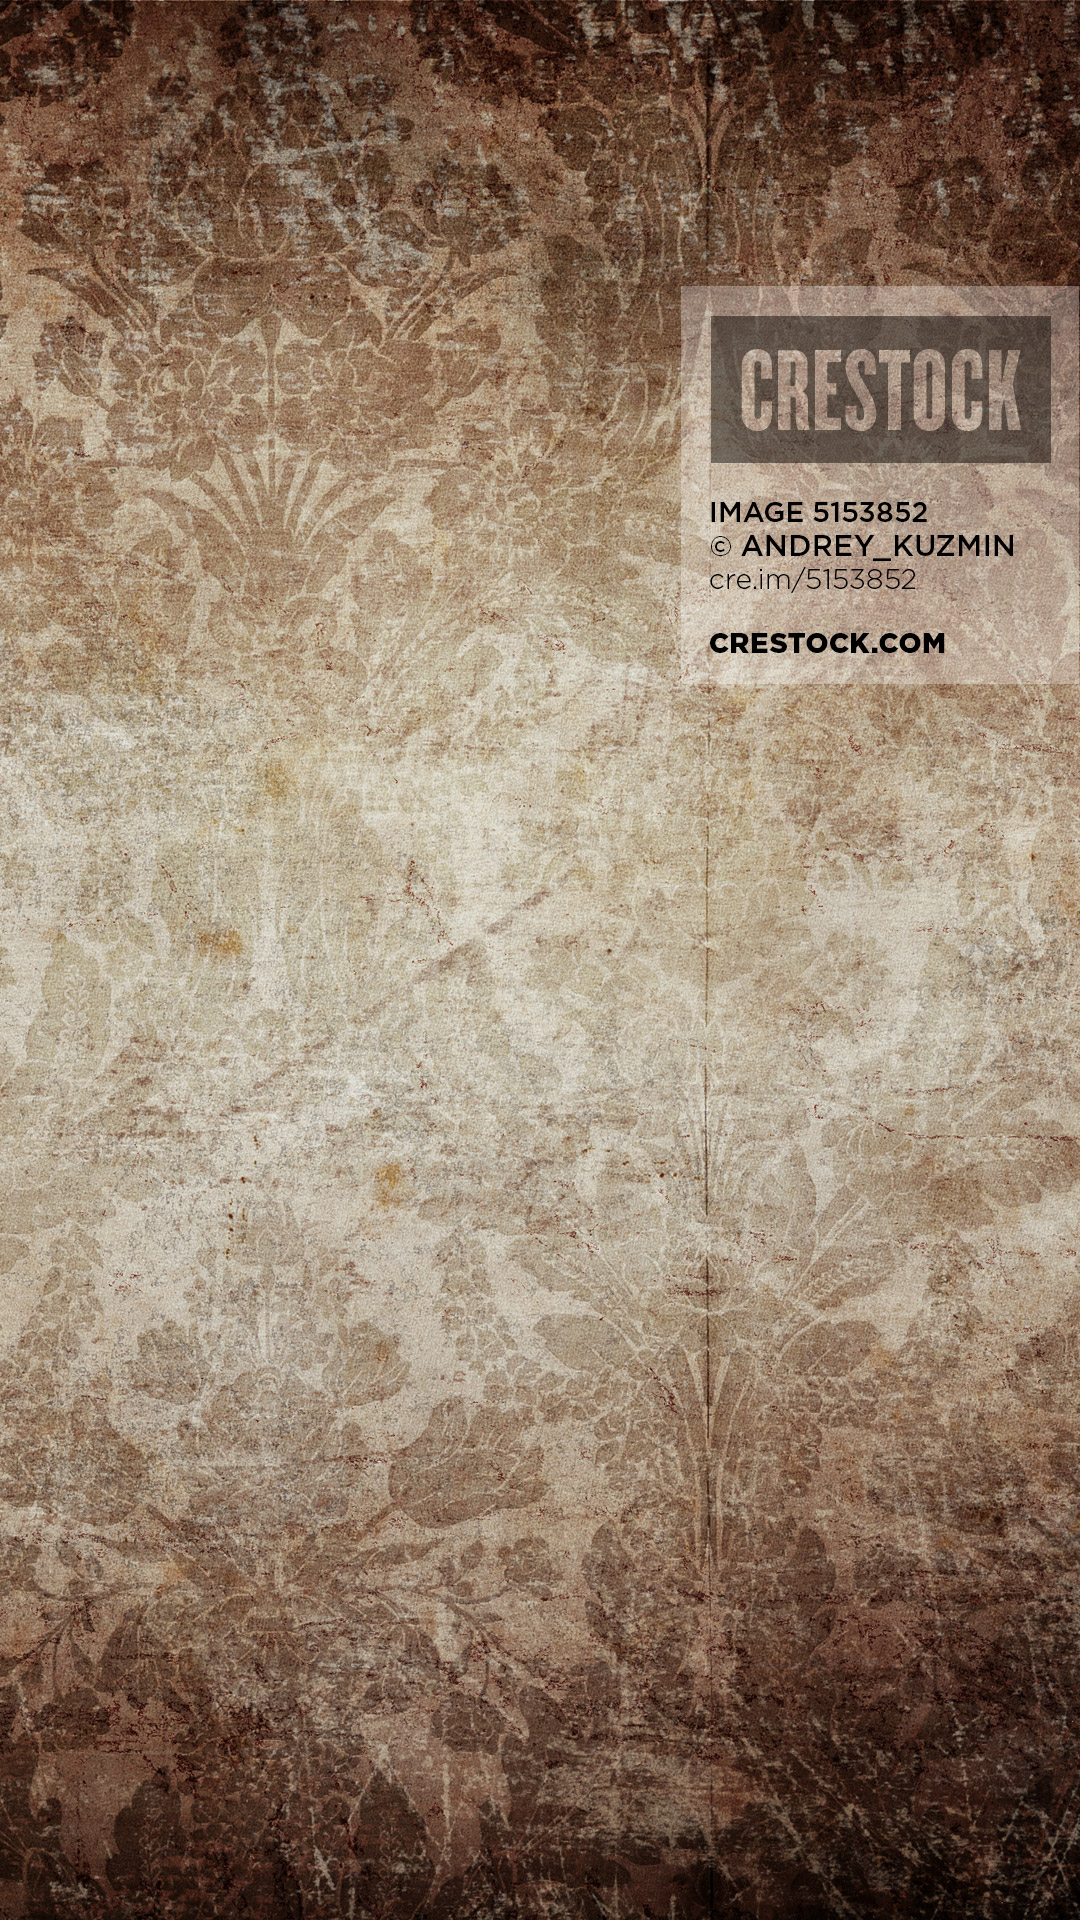 Most Inspiring Wallpaper Home Screen Vintage - Crestock-5153852-1080x1920  Pic_608434.jpg